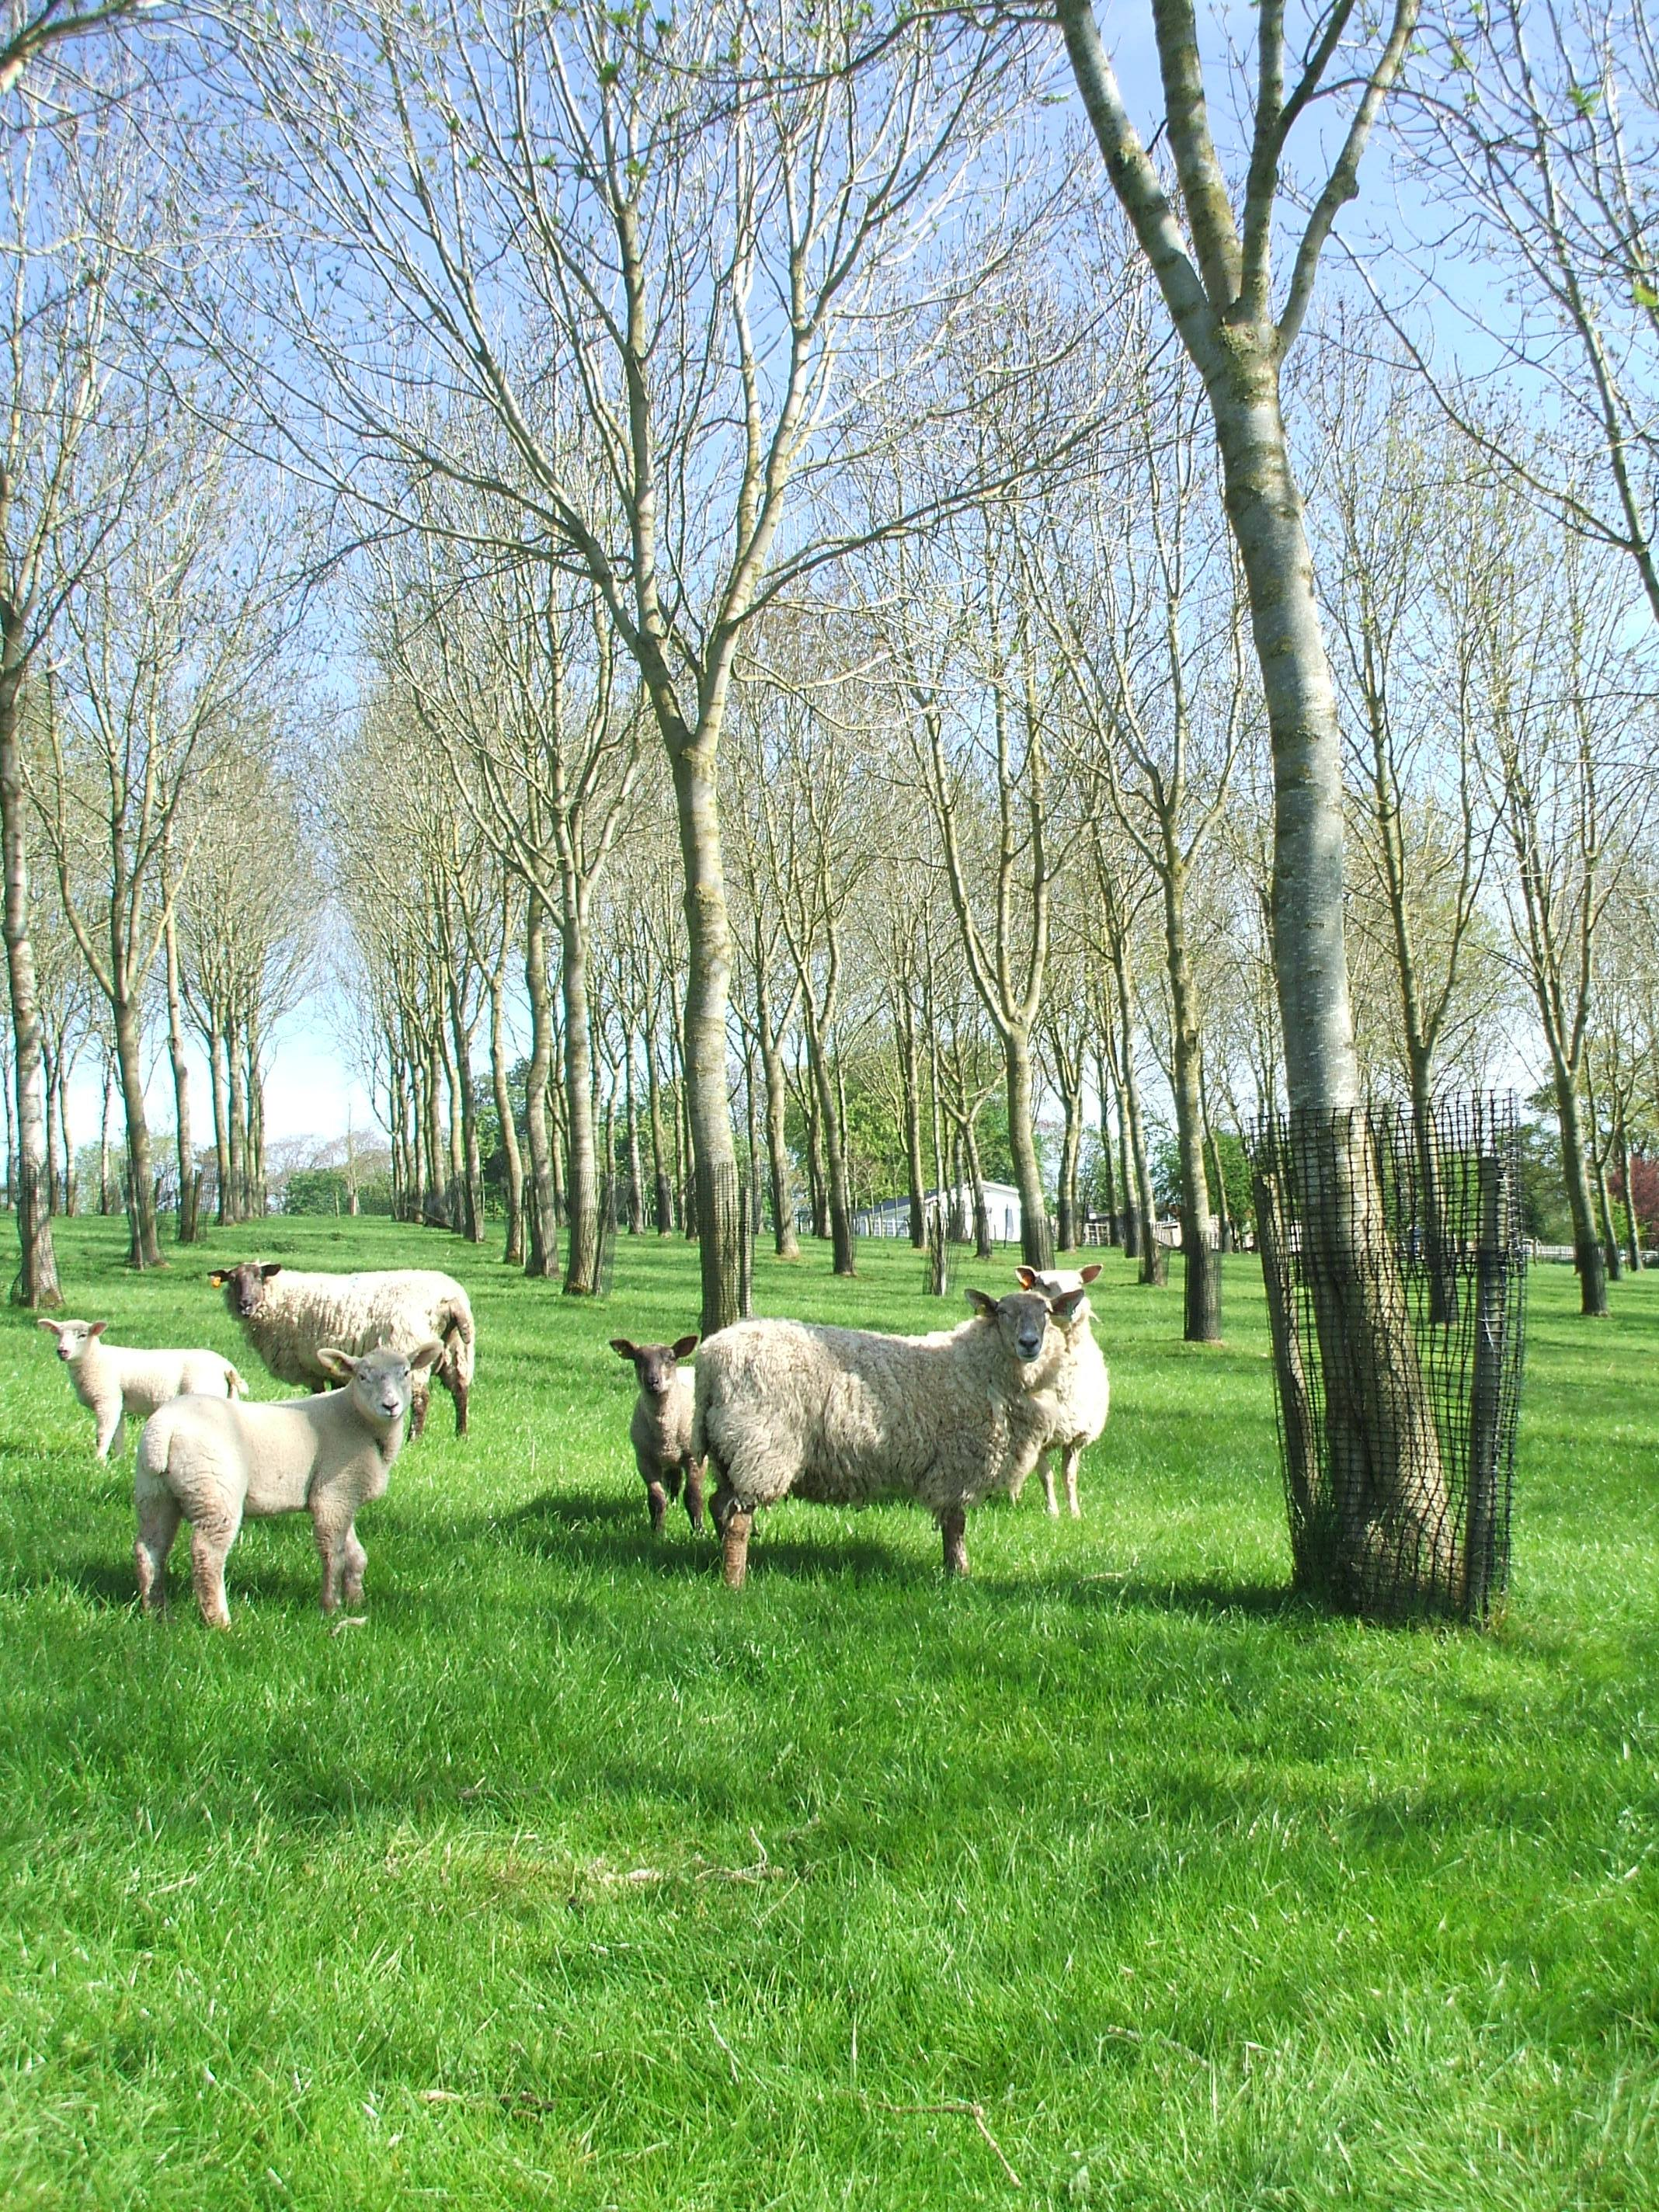 silviopastoral agroforestry (Sheep with trees) in Loughgall, Northern Ireland.